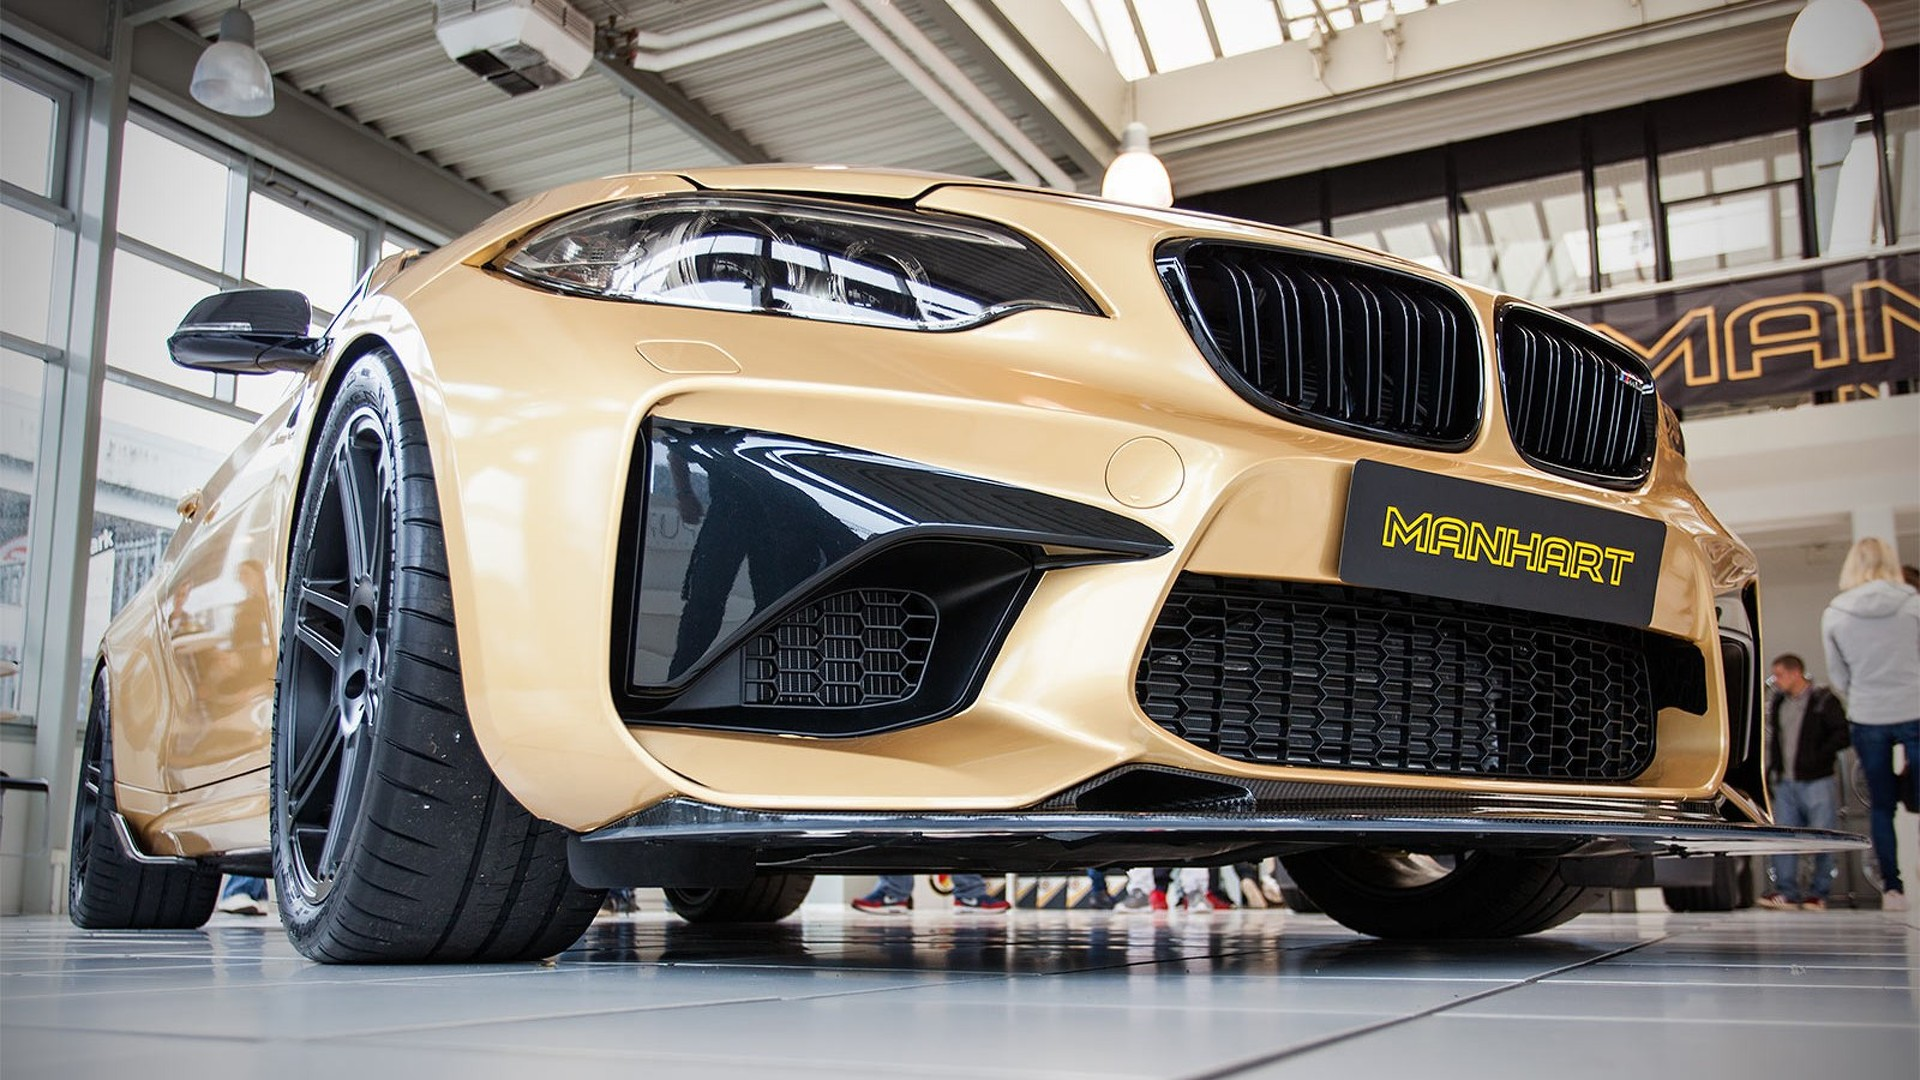 BMW M2 with 630 hp marks Manhart's 30th anniversary